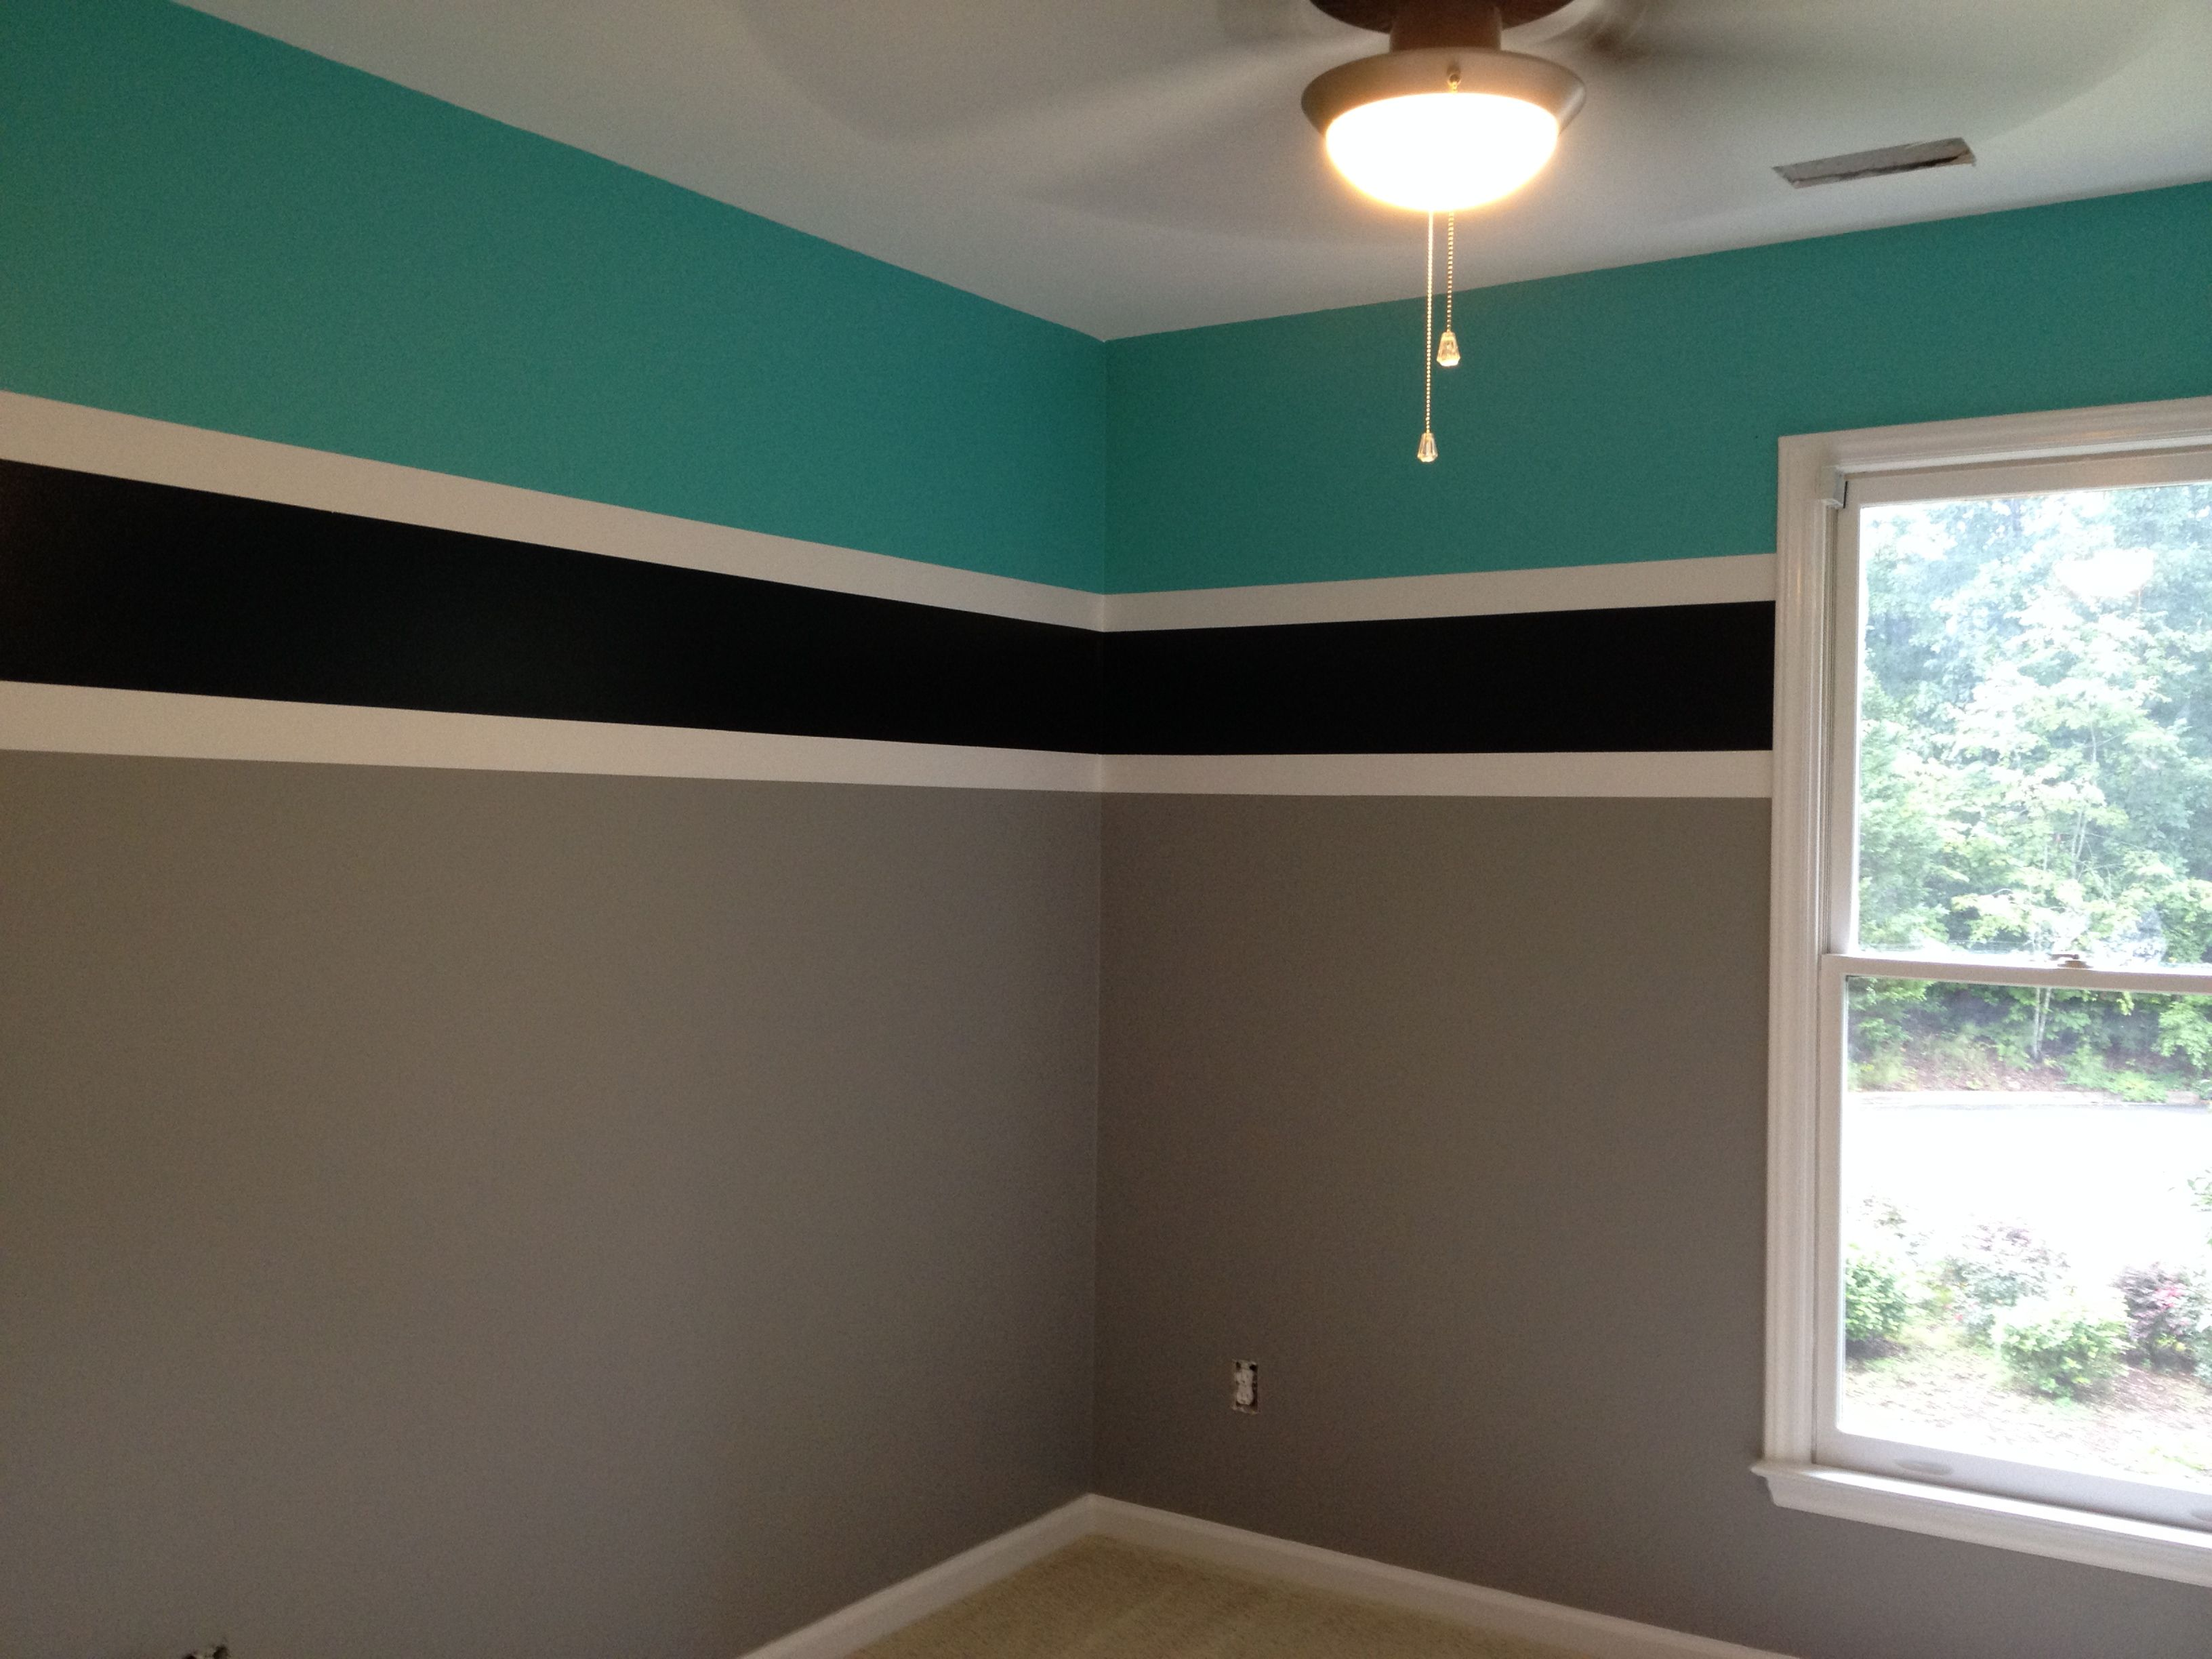 best ideas about boy room paint on pinterest boys room ideas - Children S Bedroom Paint Ideas